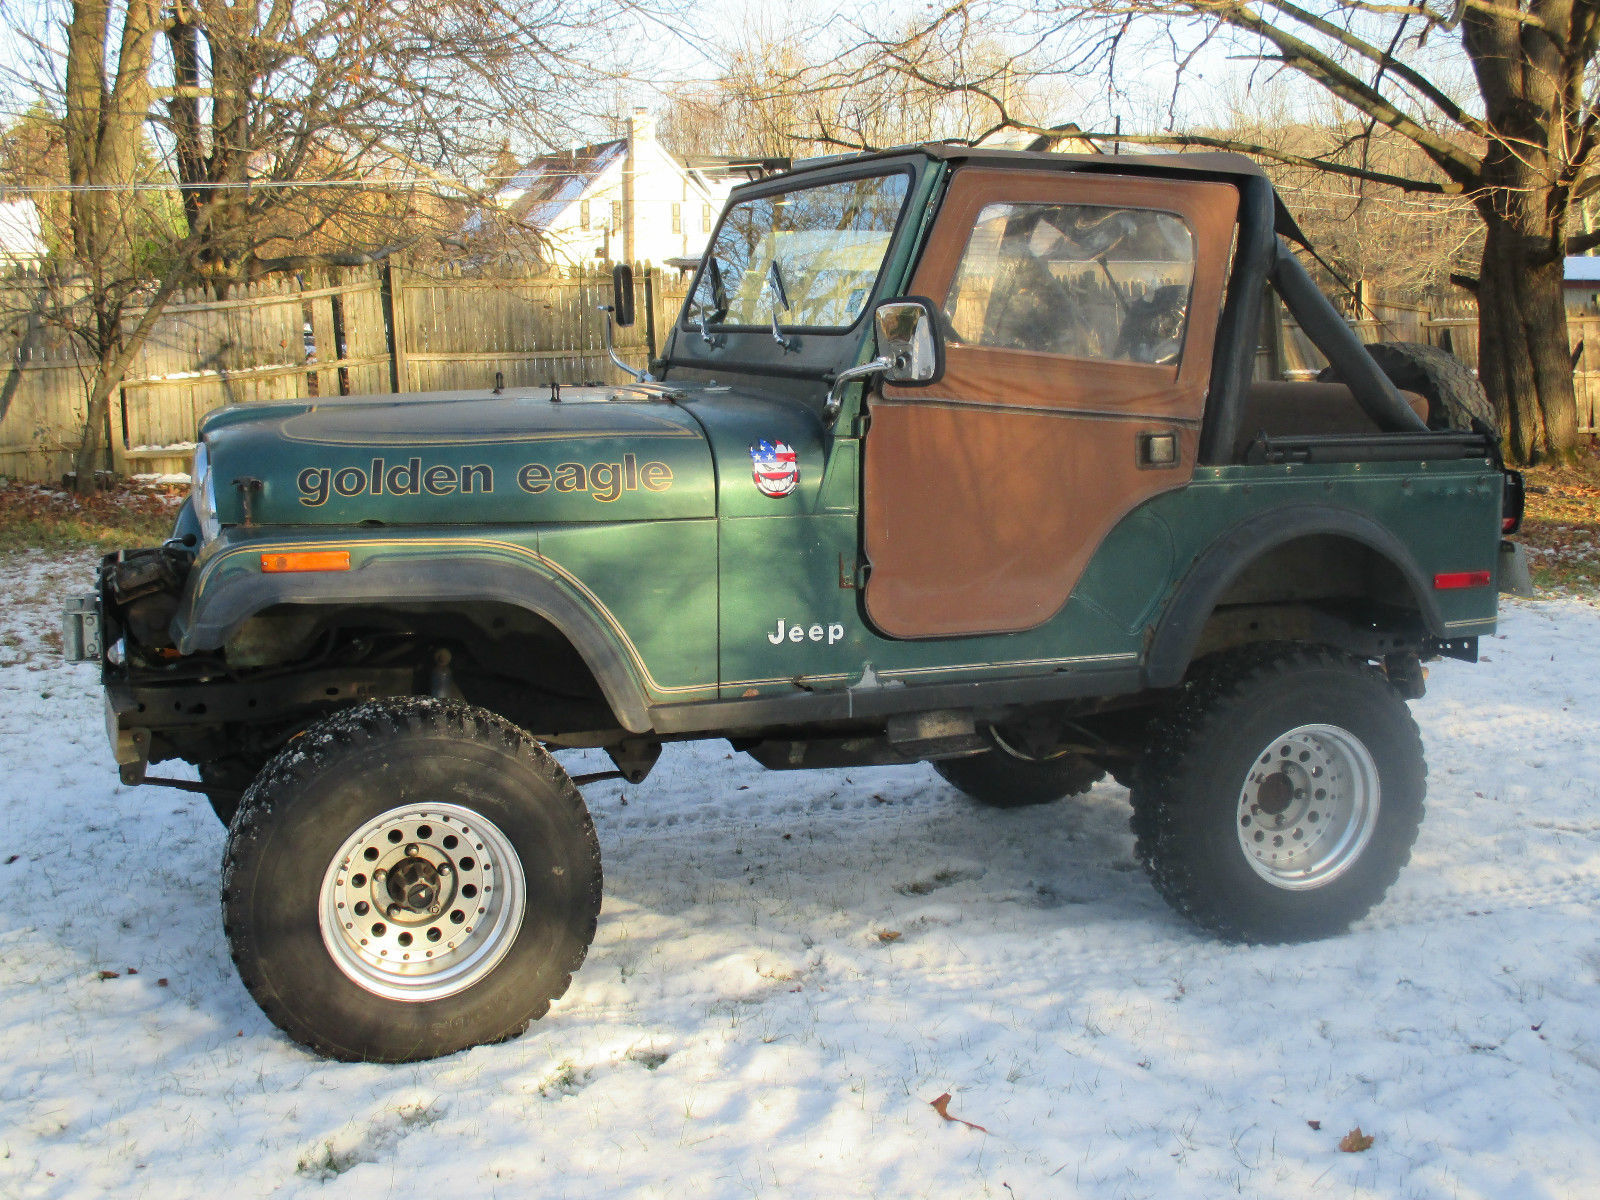 1979 Amc Jeep Golden Eagle Cj5 Cj 5 Lifted With Extras And Transmissions 12000 Winch